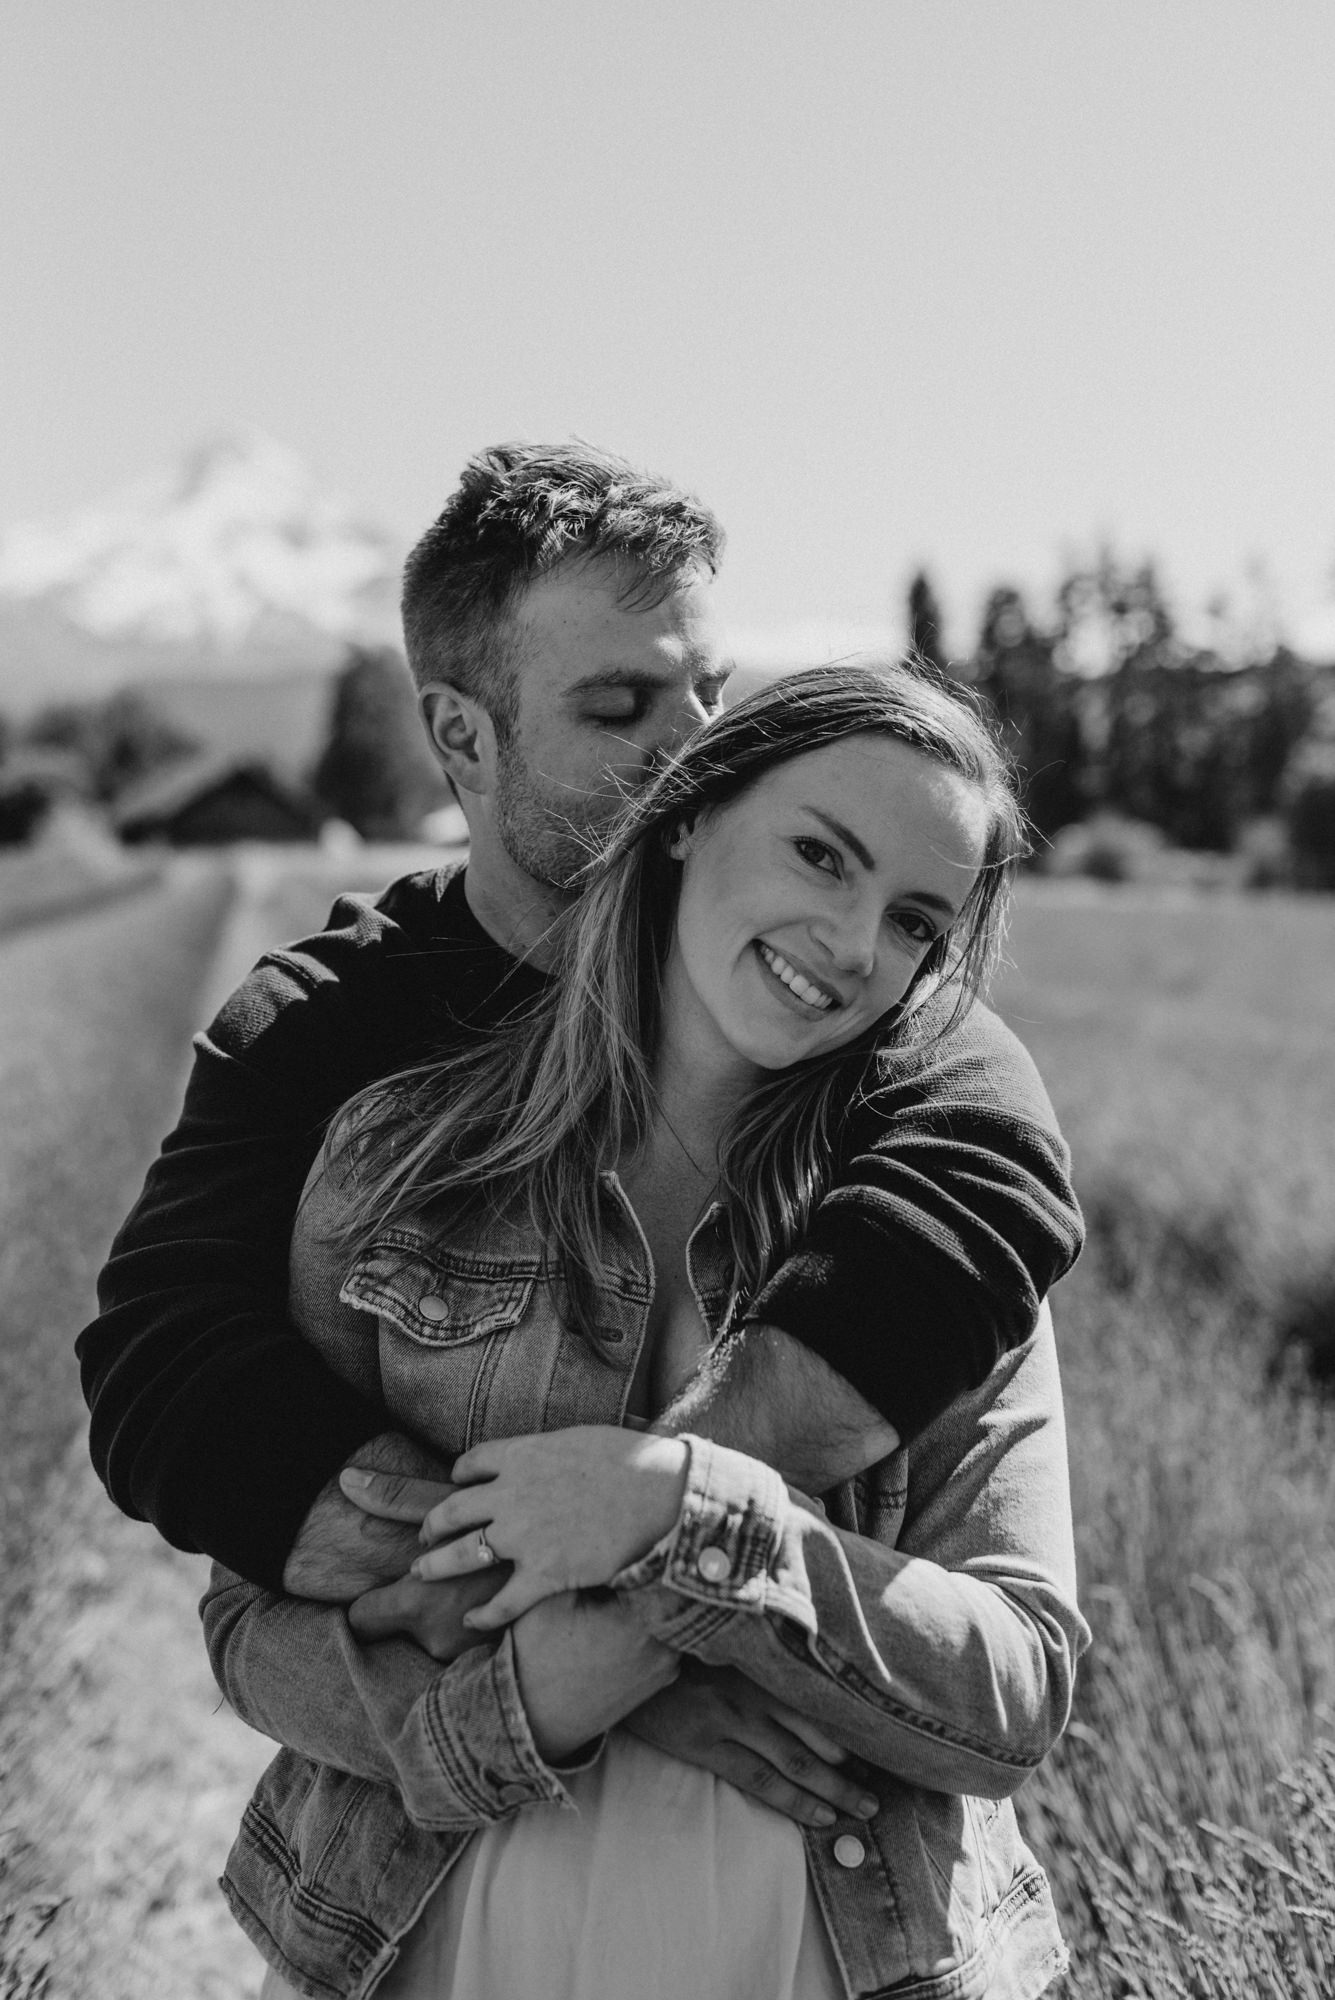 6-Mt-hood-lavender-farms-engagment-couple-summer-7070.jpg